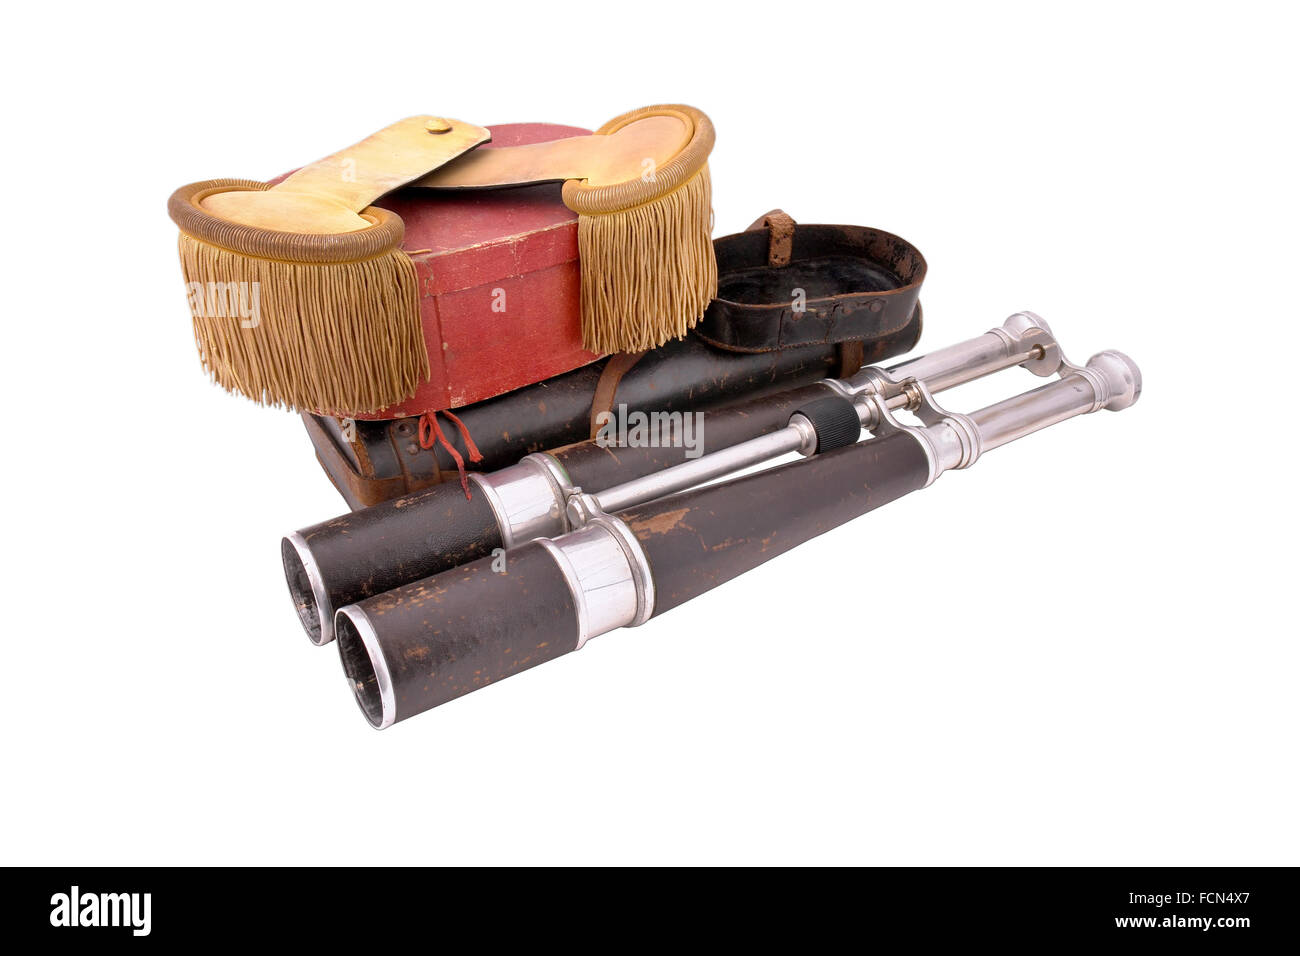 Binocular of dirigible (Zeppelin) captain with leather case. - Stock Image